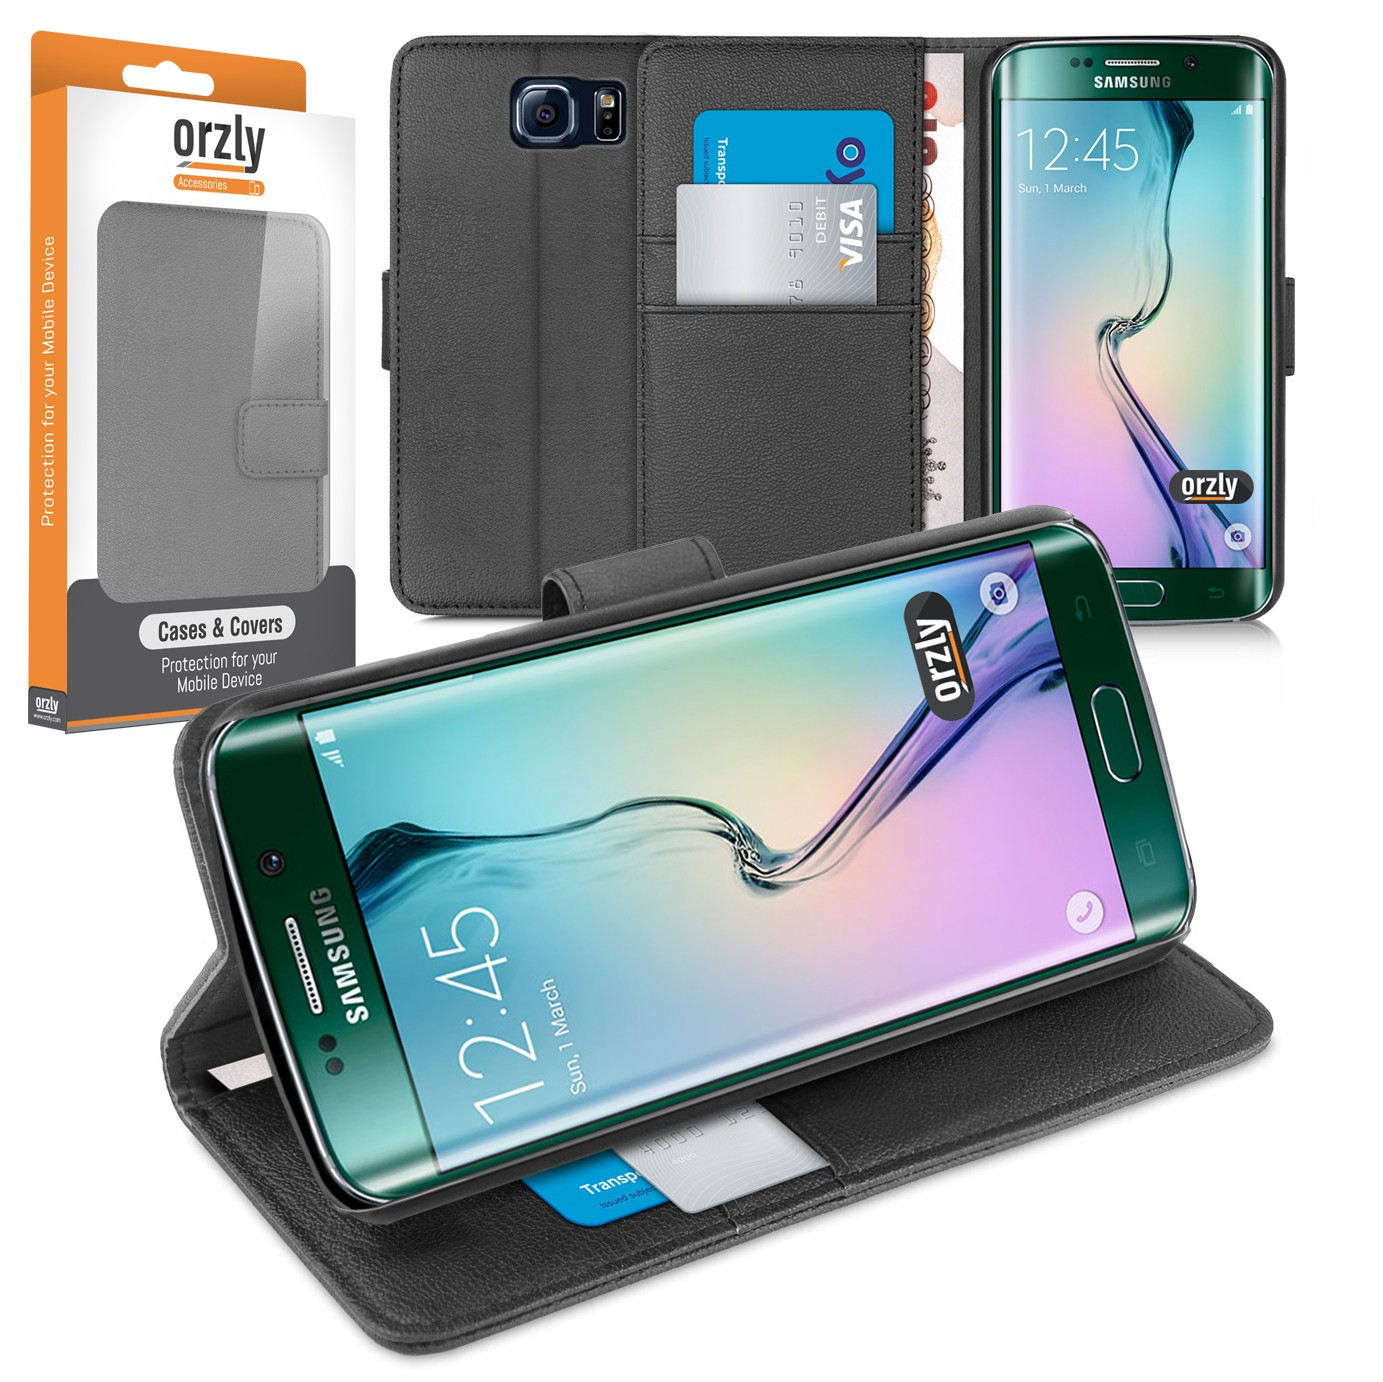 Galaxy S6 Edge Case Wallet Cover For Samsung Samsunggalaxy Note Black 1x Orzly Multi Functional